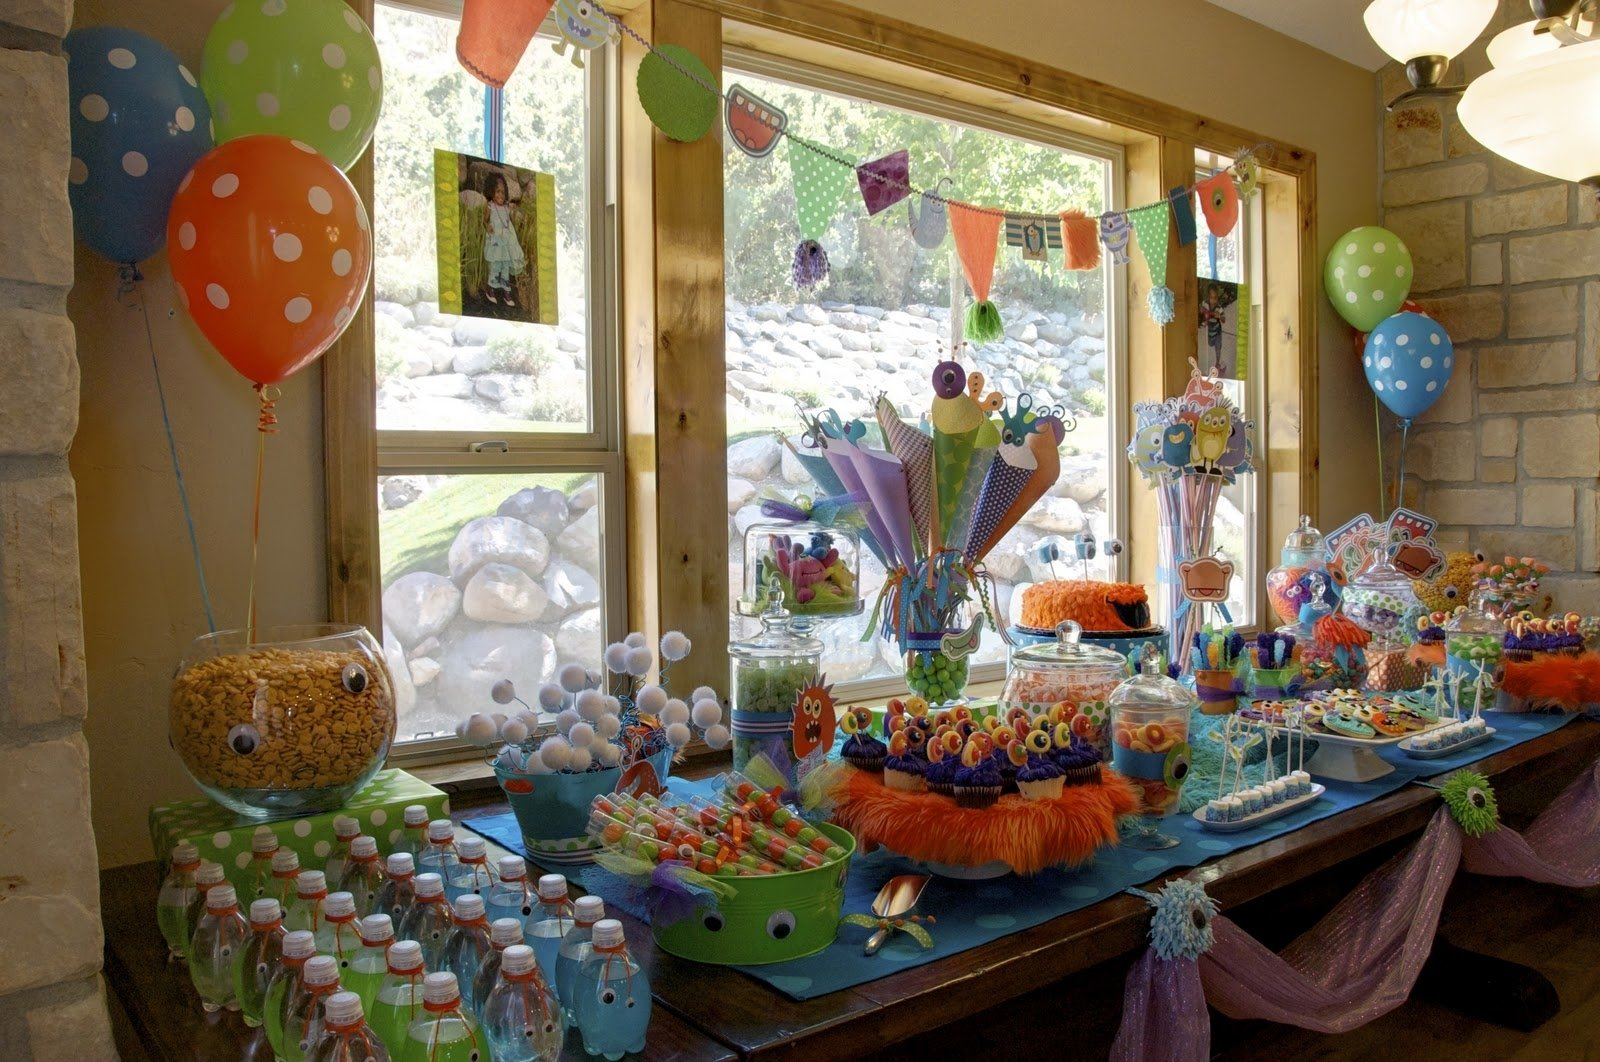 10 Best Fun Birthday Ideas For 13 Year Olds my friends birthday is in the winter and she wanteaes cause shes 11 2021